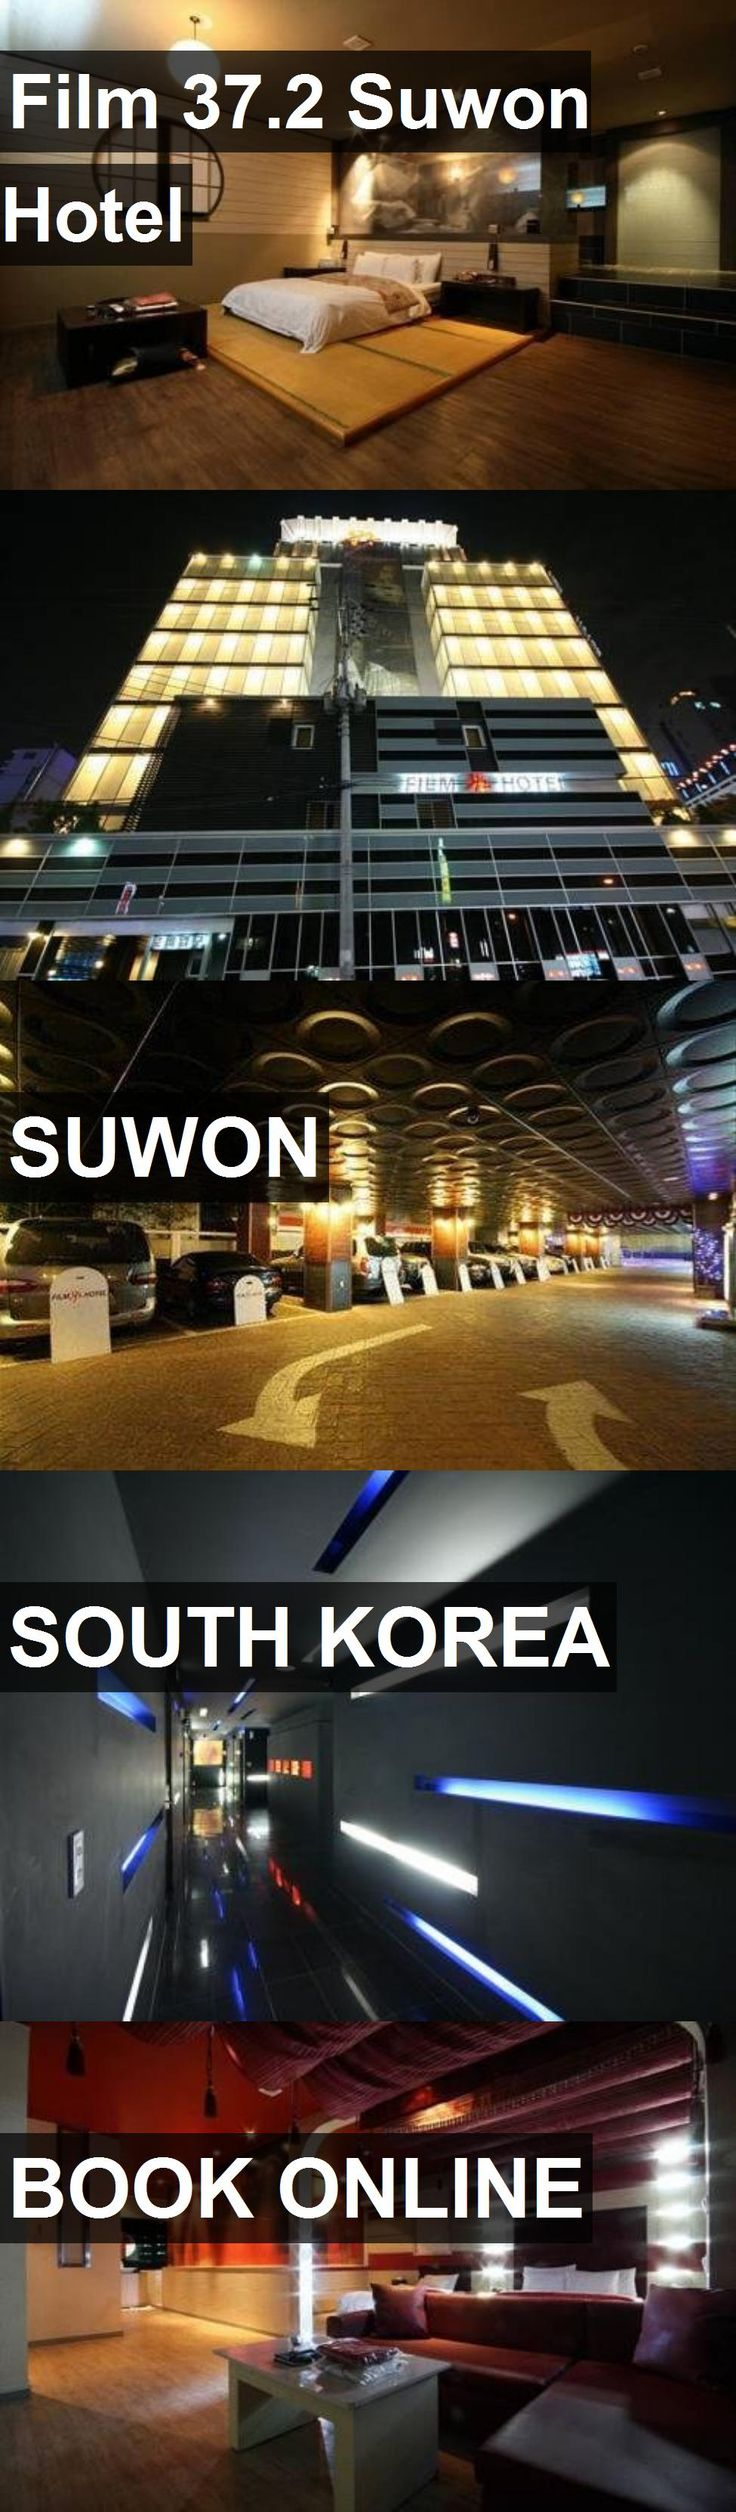 Film 37.2 Suwon Hotel in Suwon, South Korea. For more information, photos, reviews and best prices please follow the link. #SouthKorea #Suwon #travel #vacation #hotel